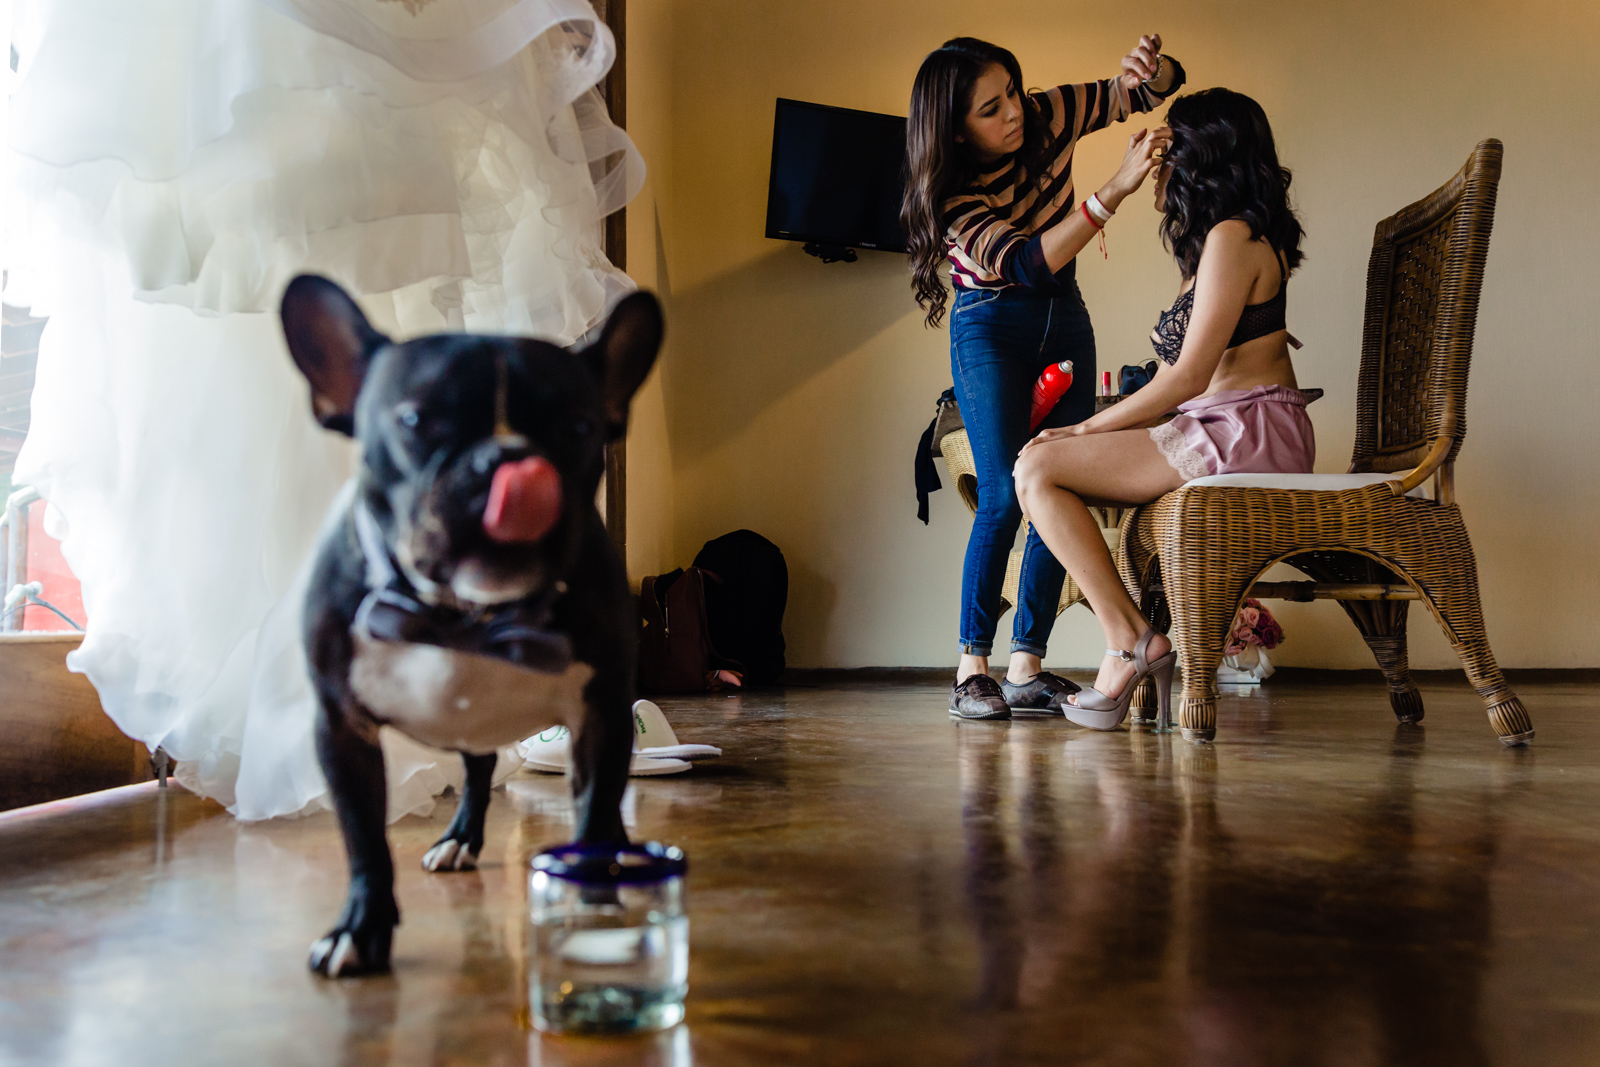 bride gettin ready with a dog looking in the camera, bride having make up